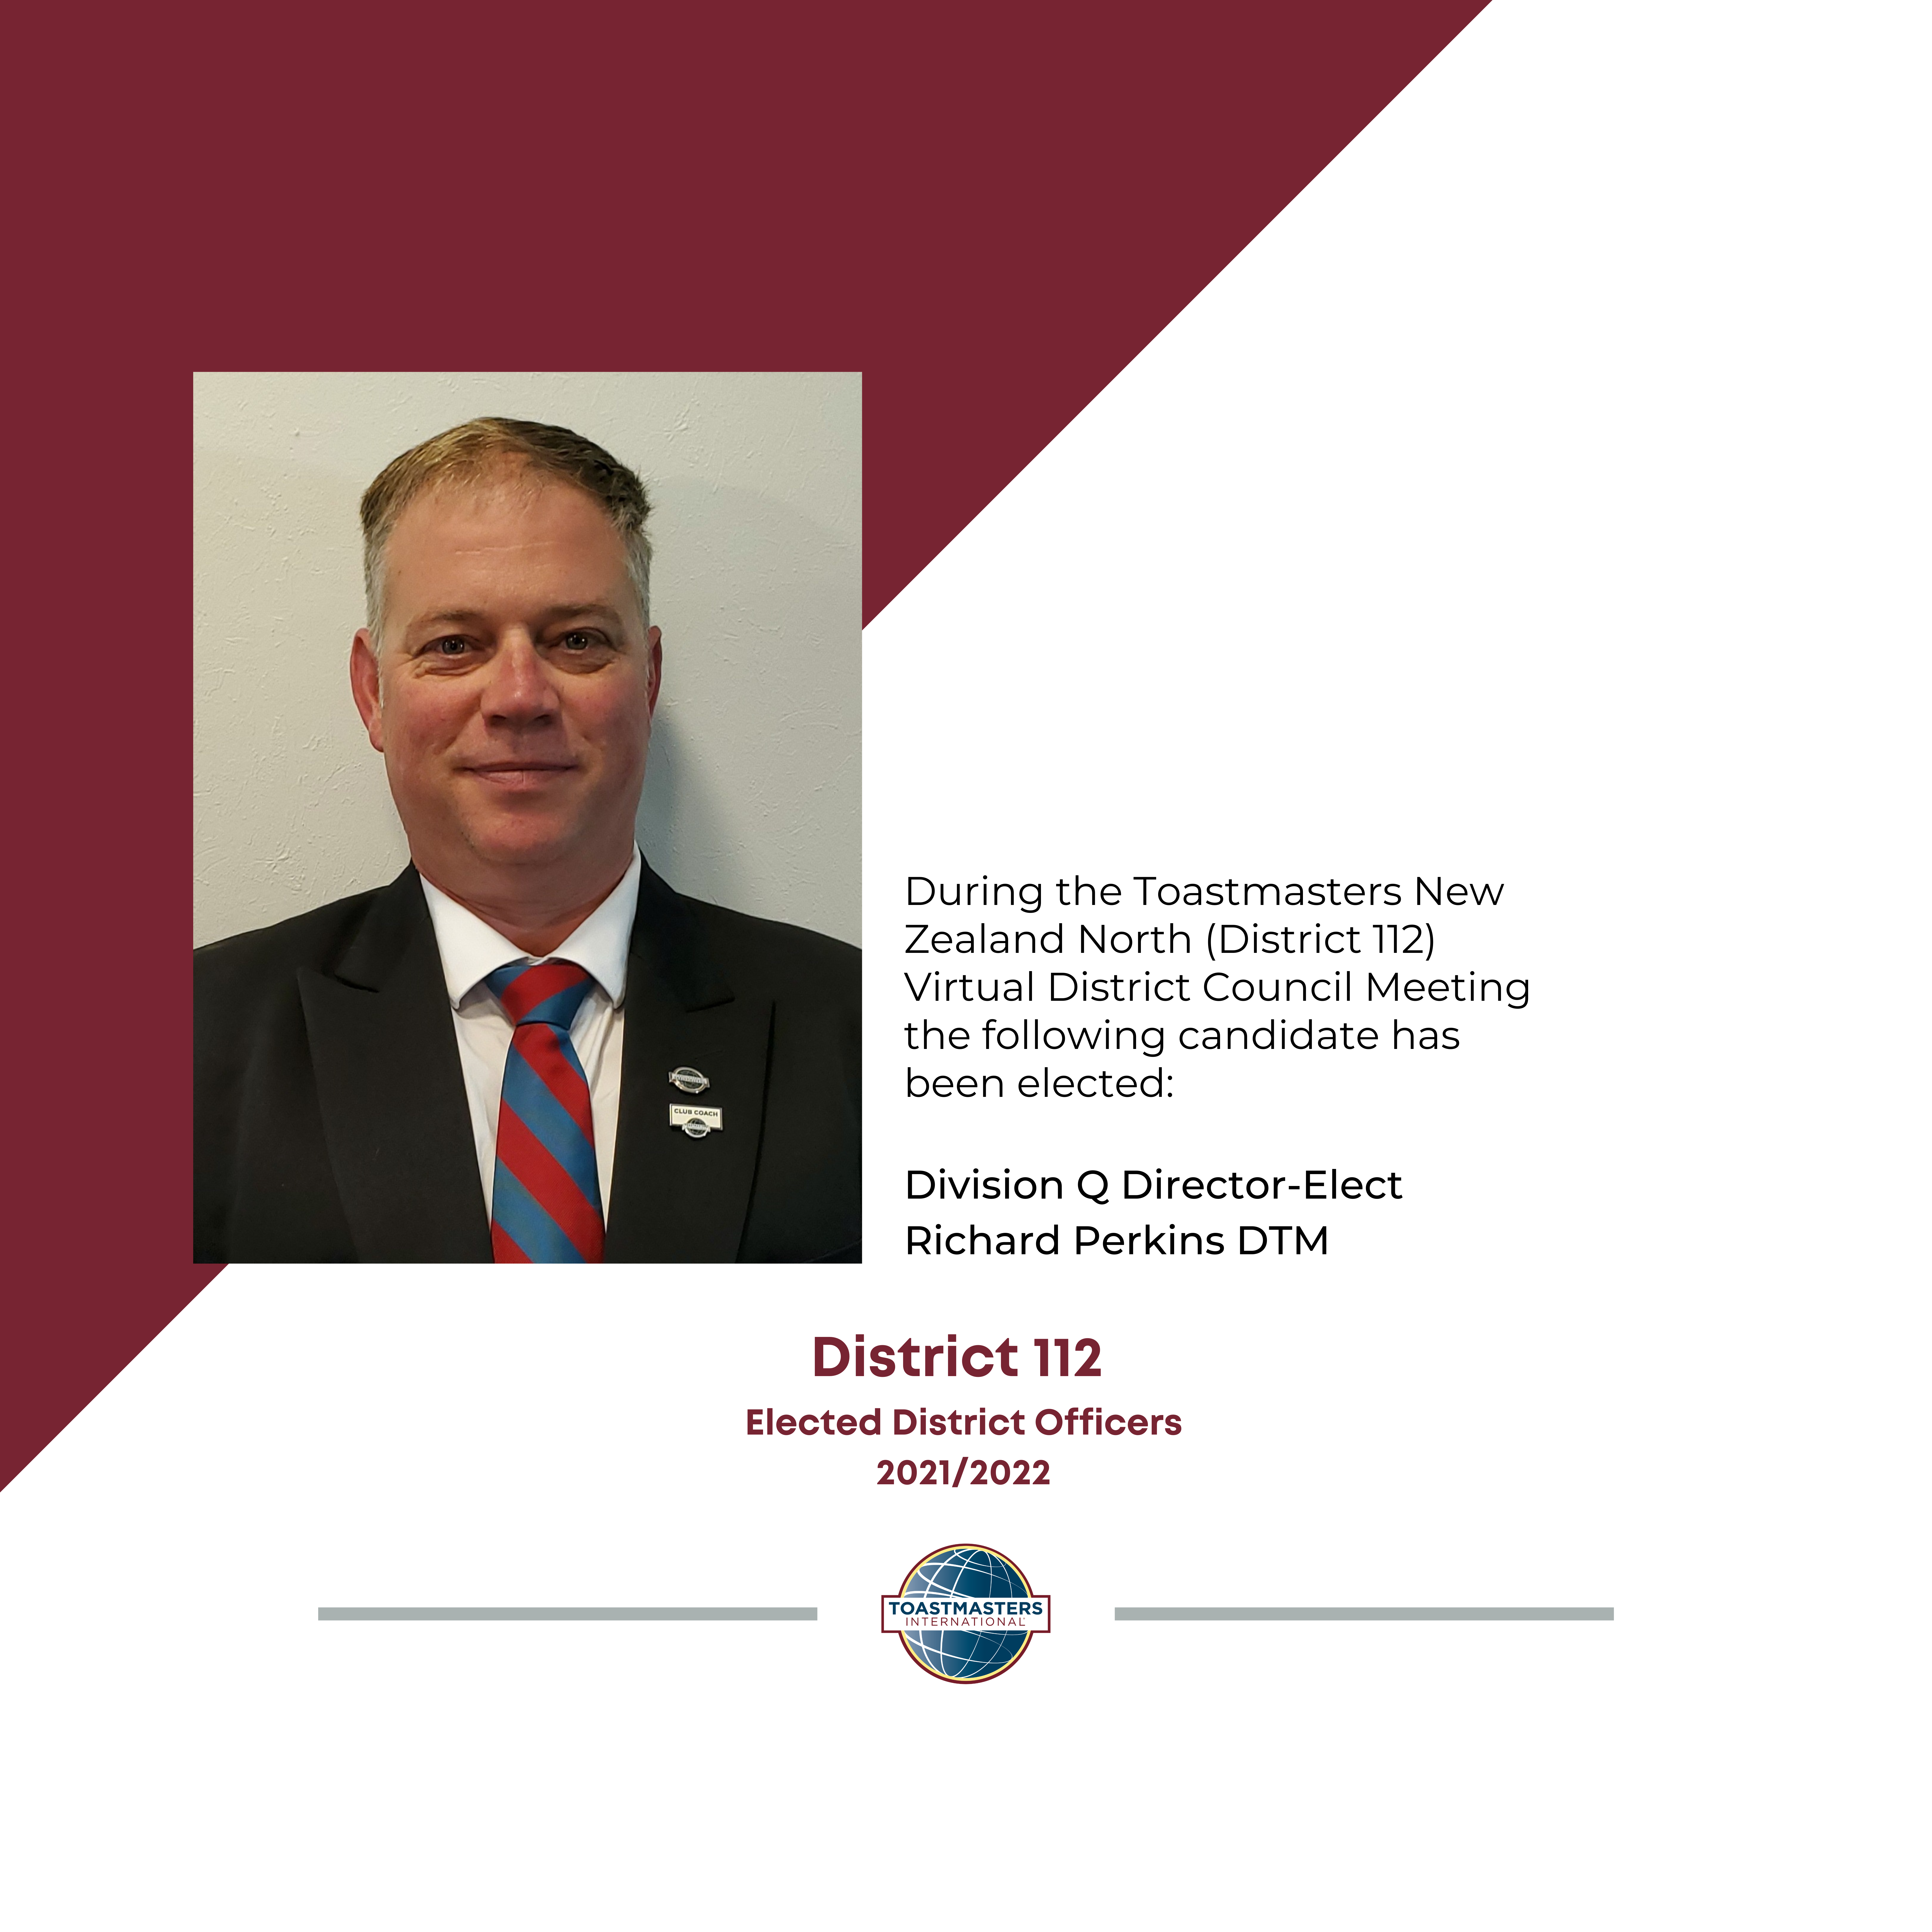 During the Toastmasters New Zealand North (District 112) Virtual District Council Meeting the following candidate has been elected:  Division Q Director-Elect Richard Perkins DTM